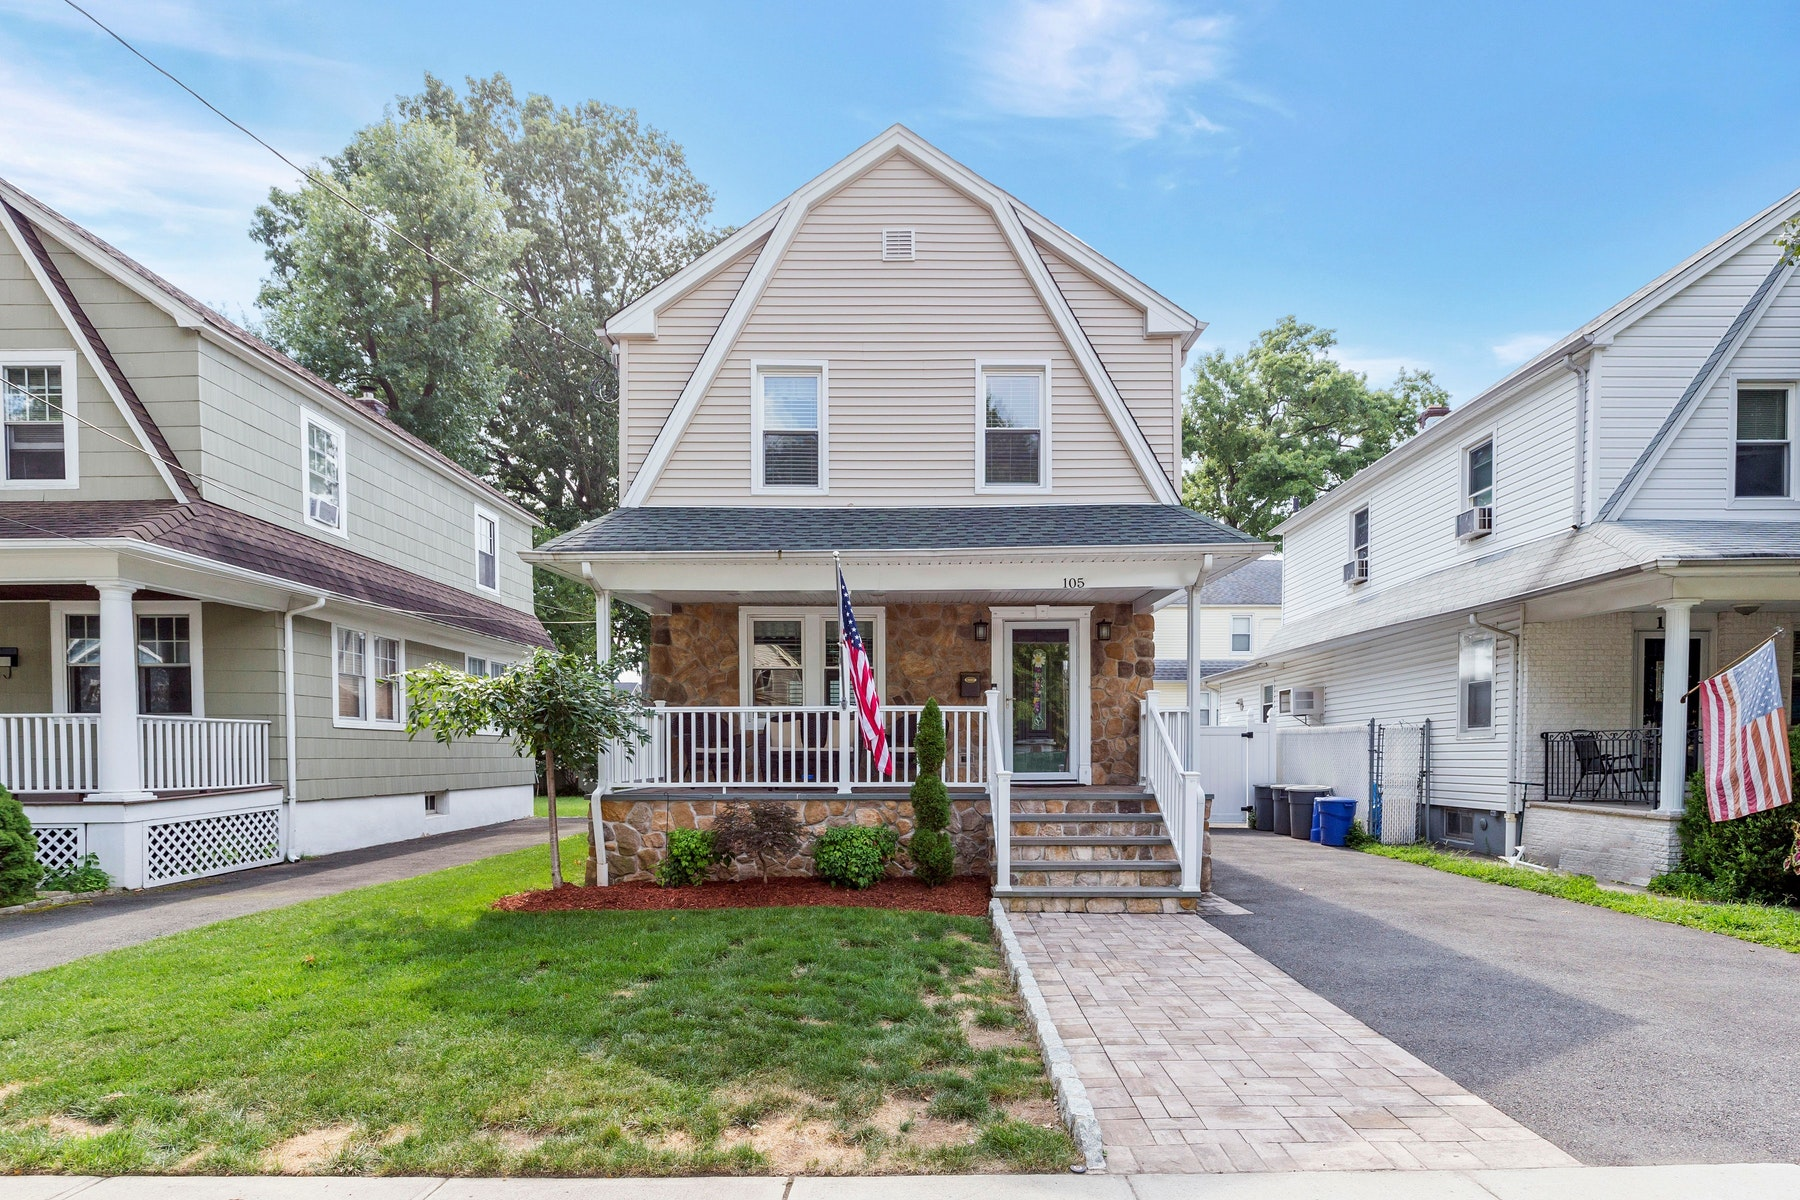 Single Family Homes for Sale at Old World Charm 105 S Michigan Ave Kenilworth, New Jersey 07033 United States